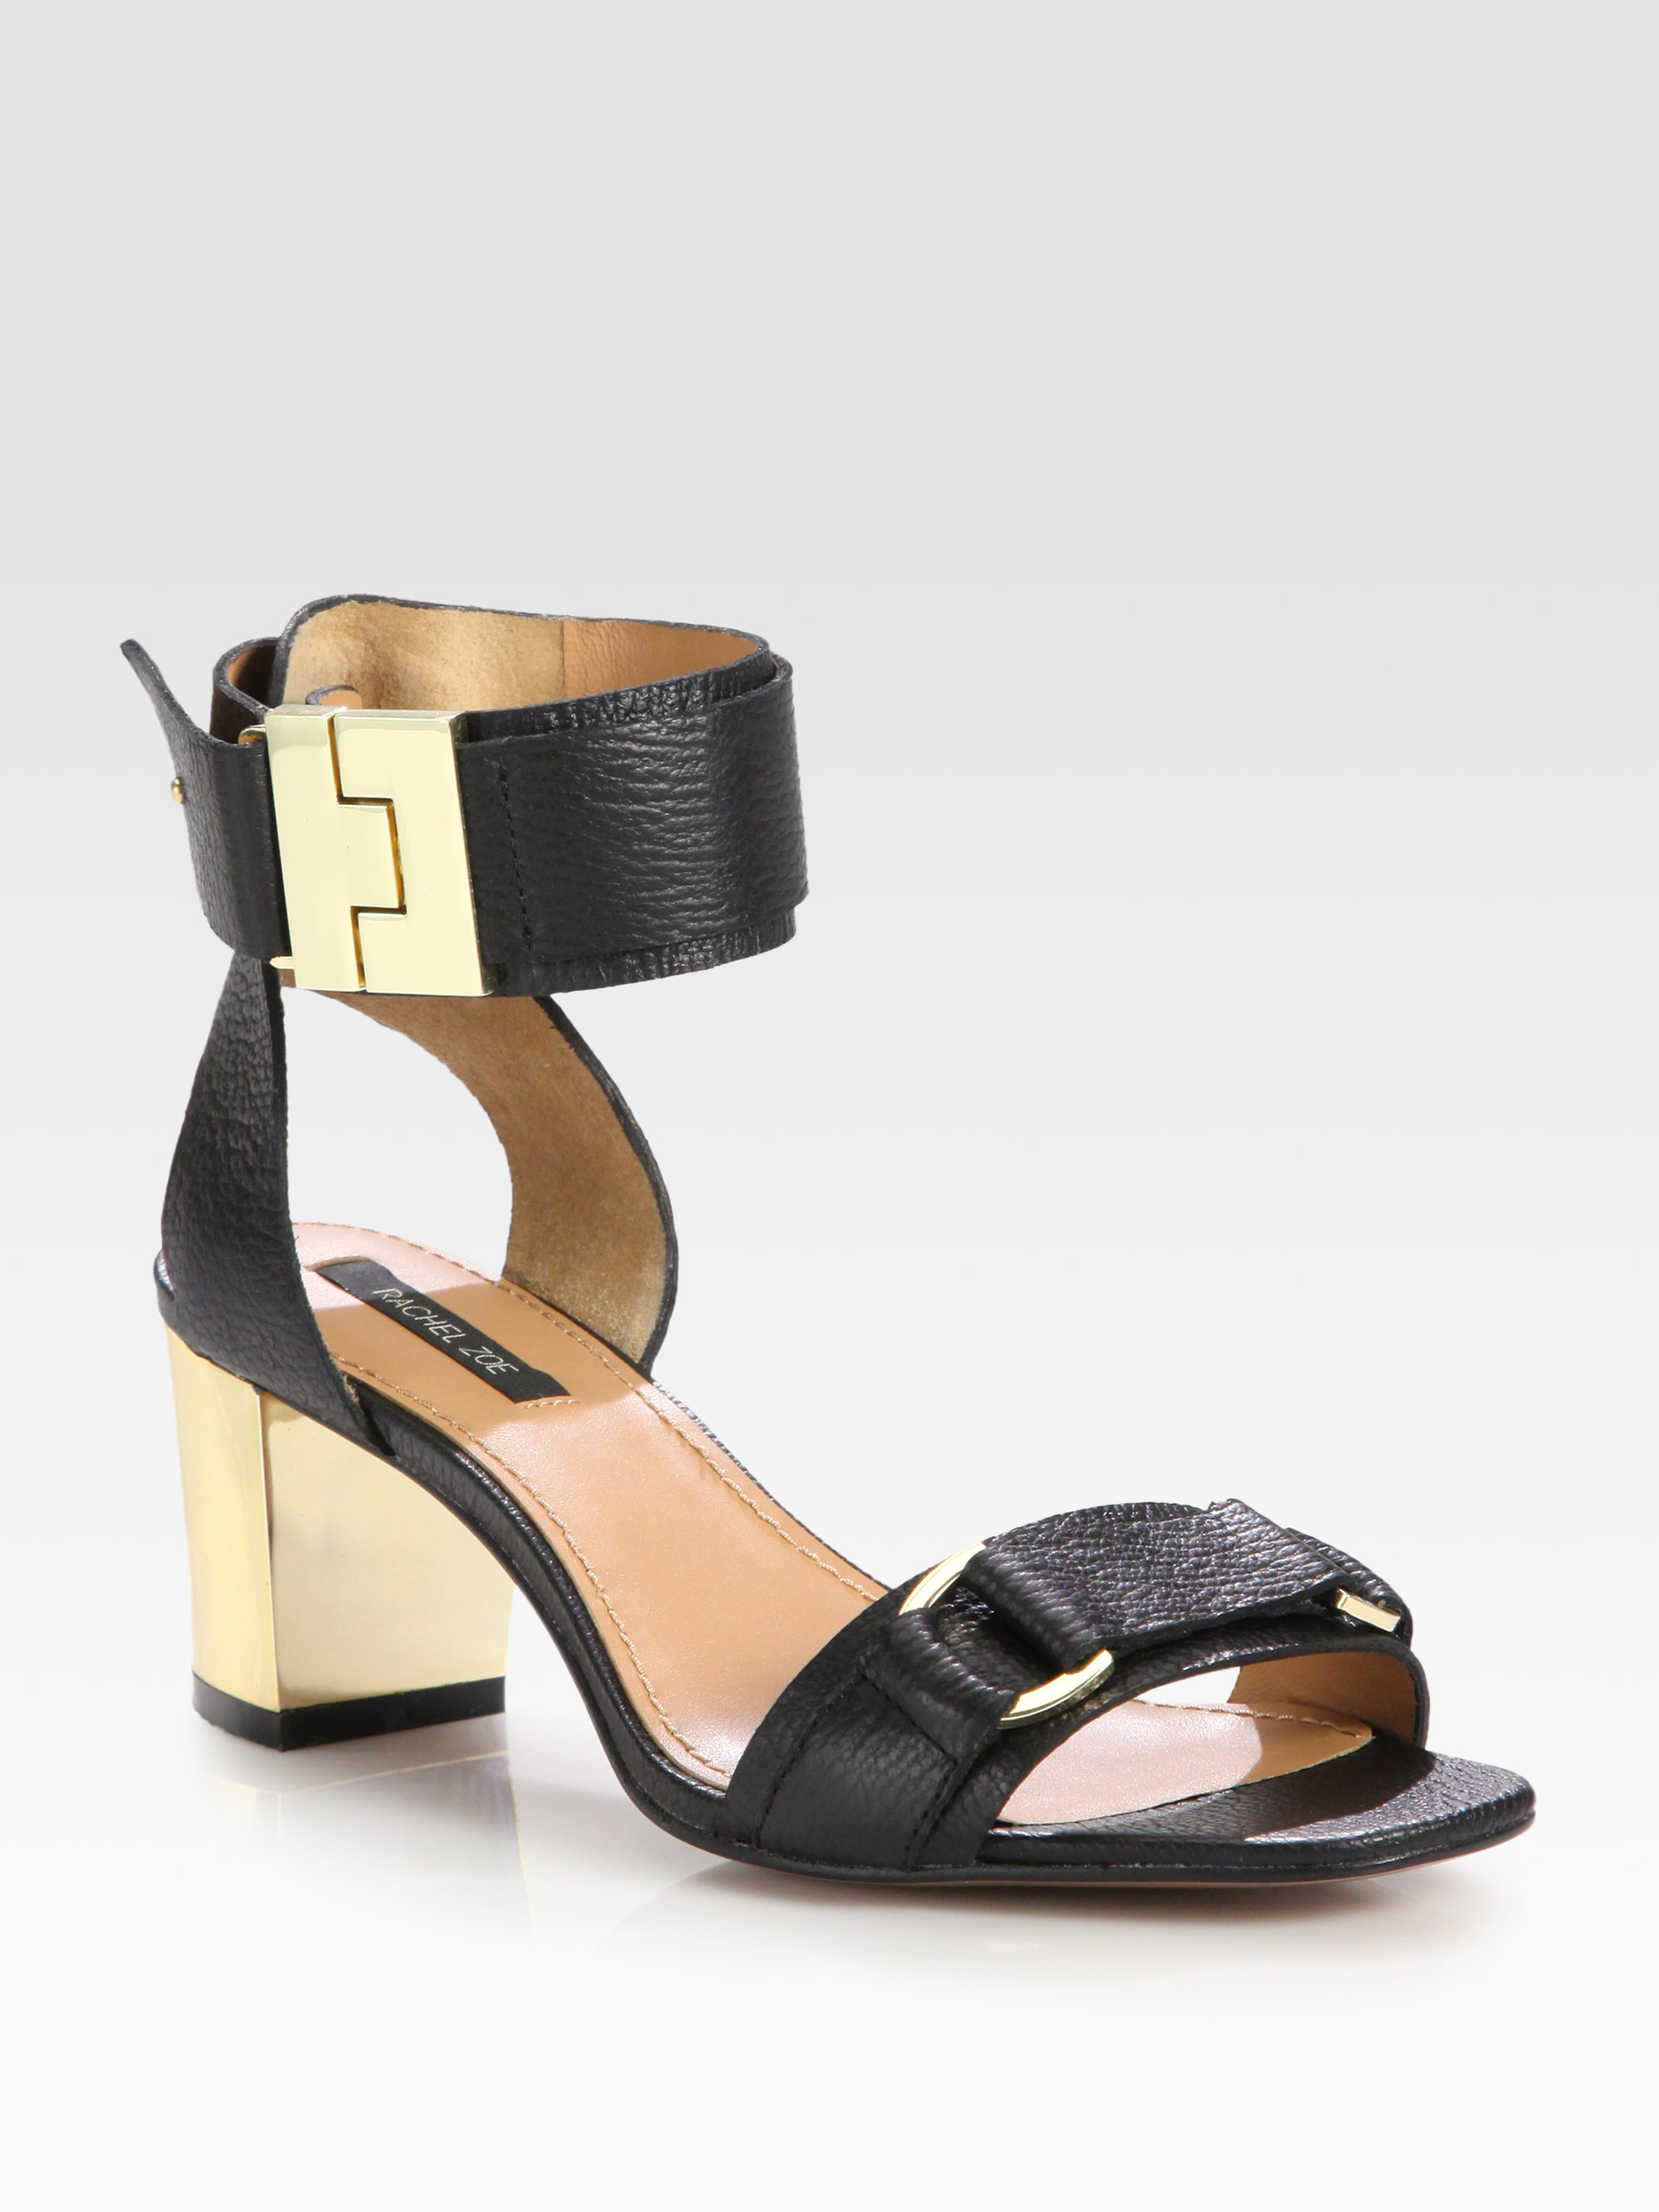 store for sale free shipping many kinds of Rachel Zoe Leather Ankle Strap Sandals outlet real trbMt